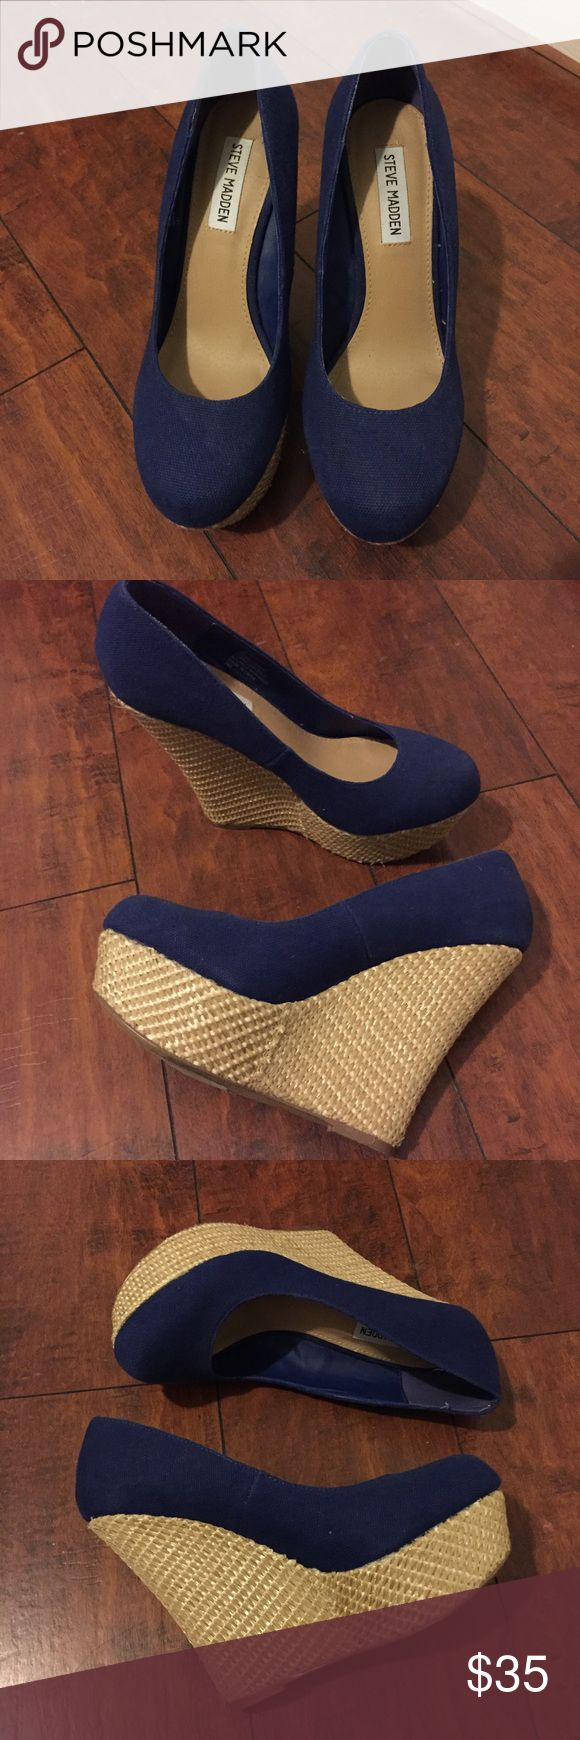 Steve Madden Blue & Cream Wedges Size 8. Good condition. Blue top, cream/nude bottom Shoes Wedges